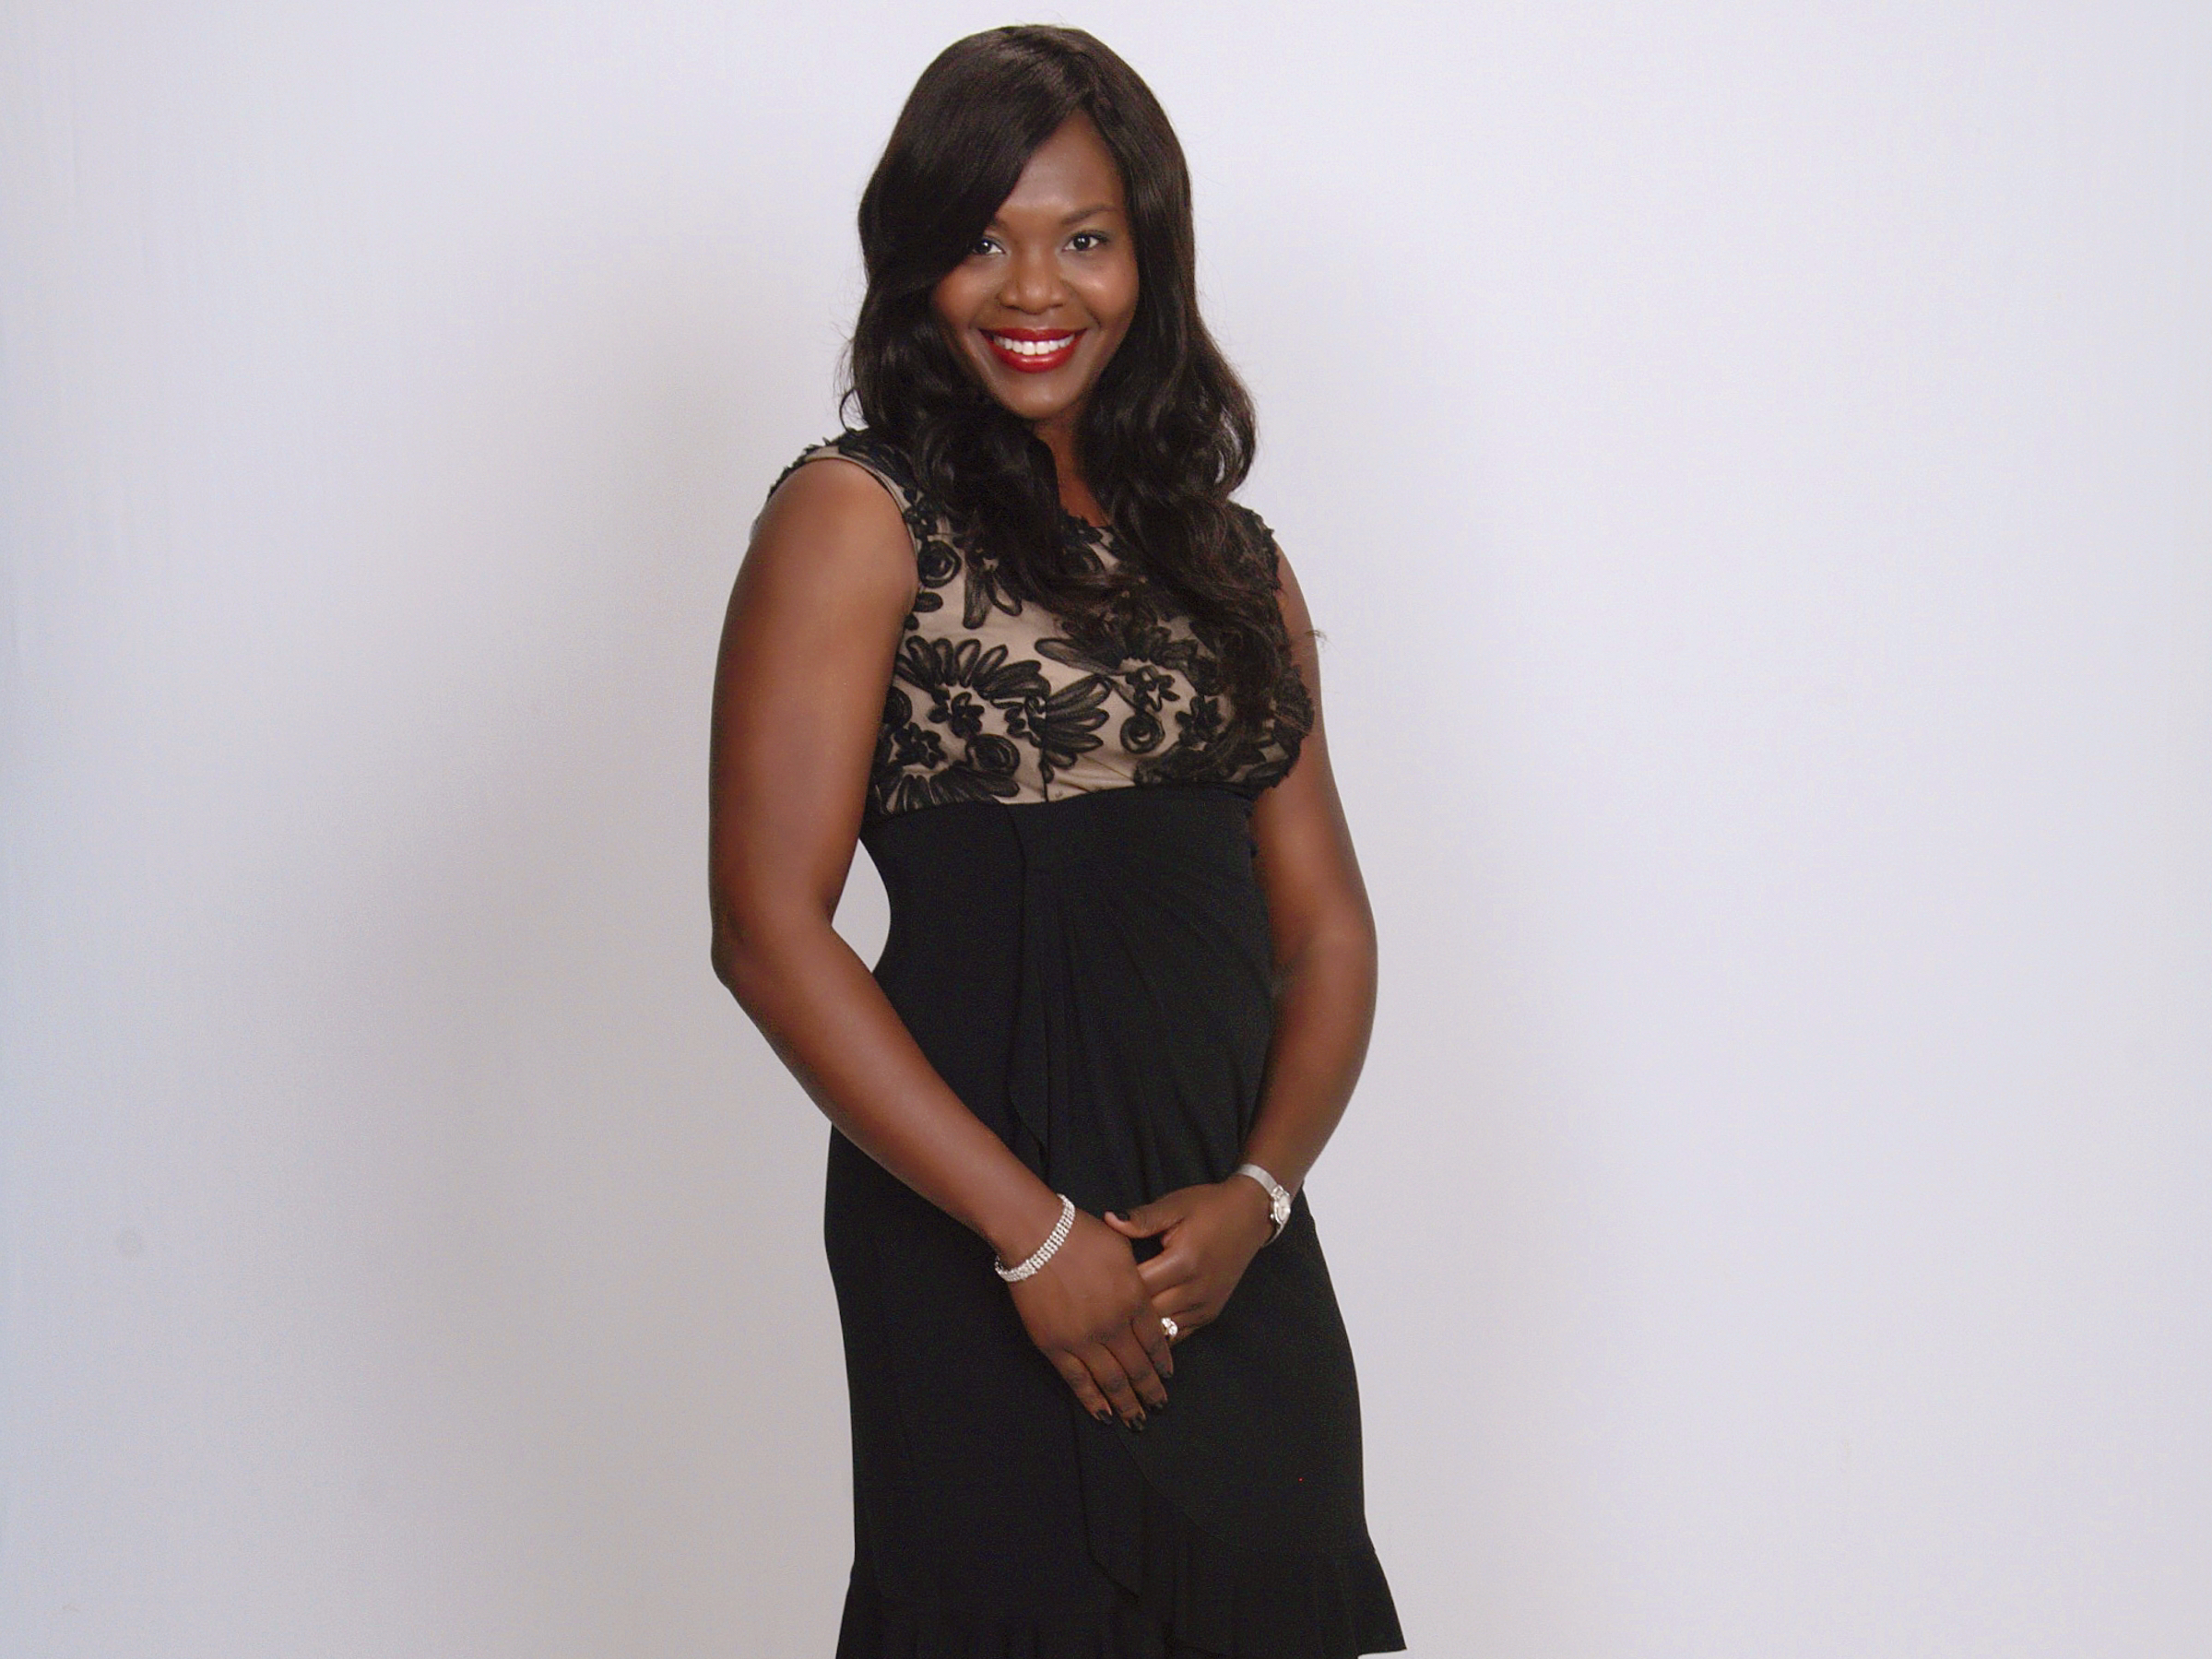 #BEYOUROWN MEETS DR. TRENESE MCNEALY